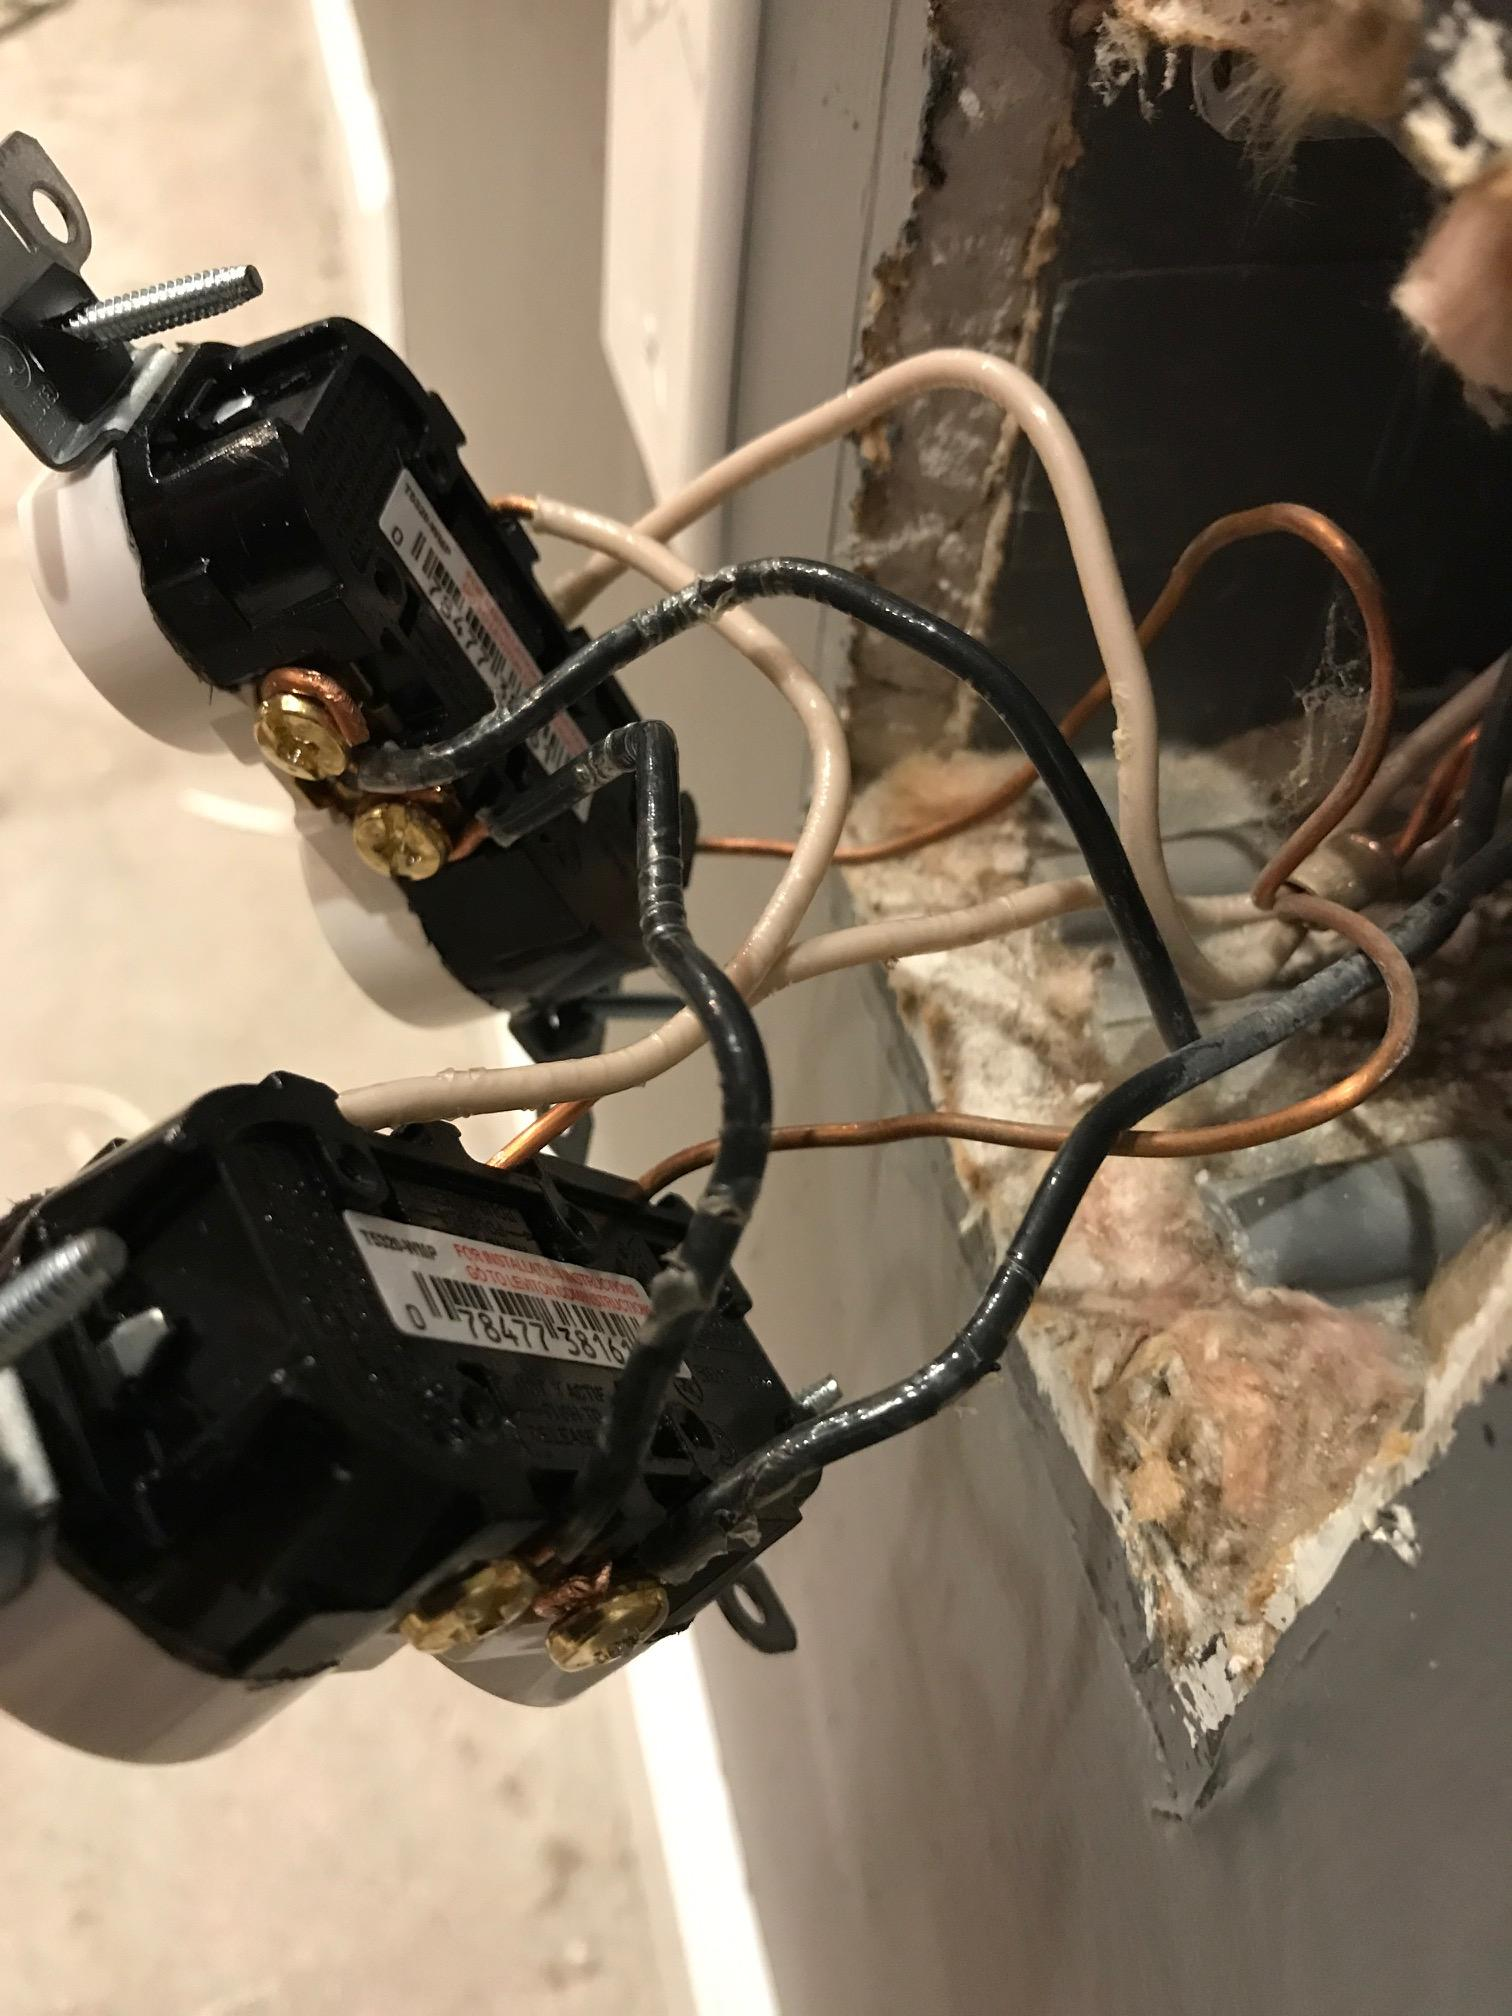 How To Wire A Double Outlet : double, outlet, Replacing, Outlet, Inside, 2-gang, Improvement, Stack, Exchange